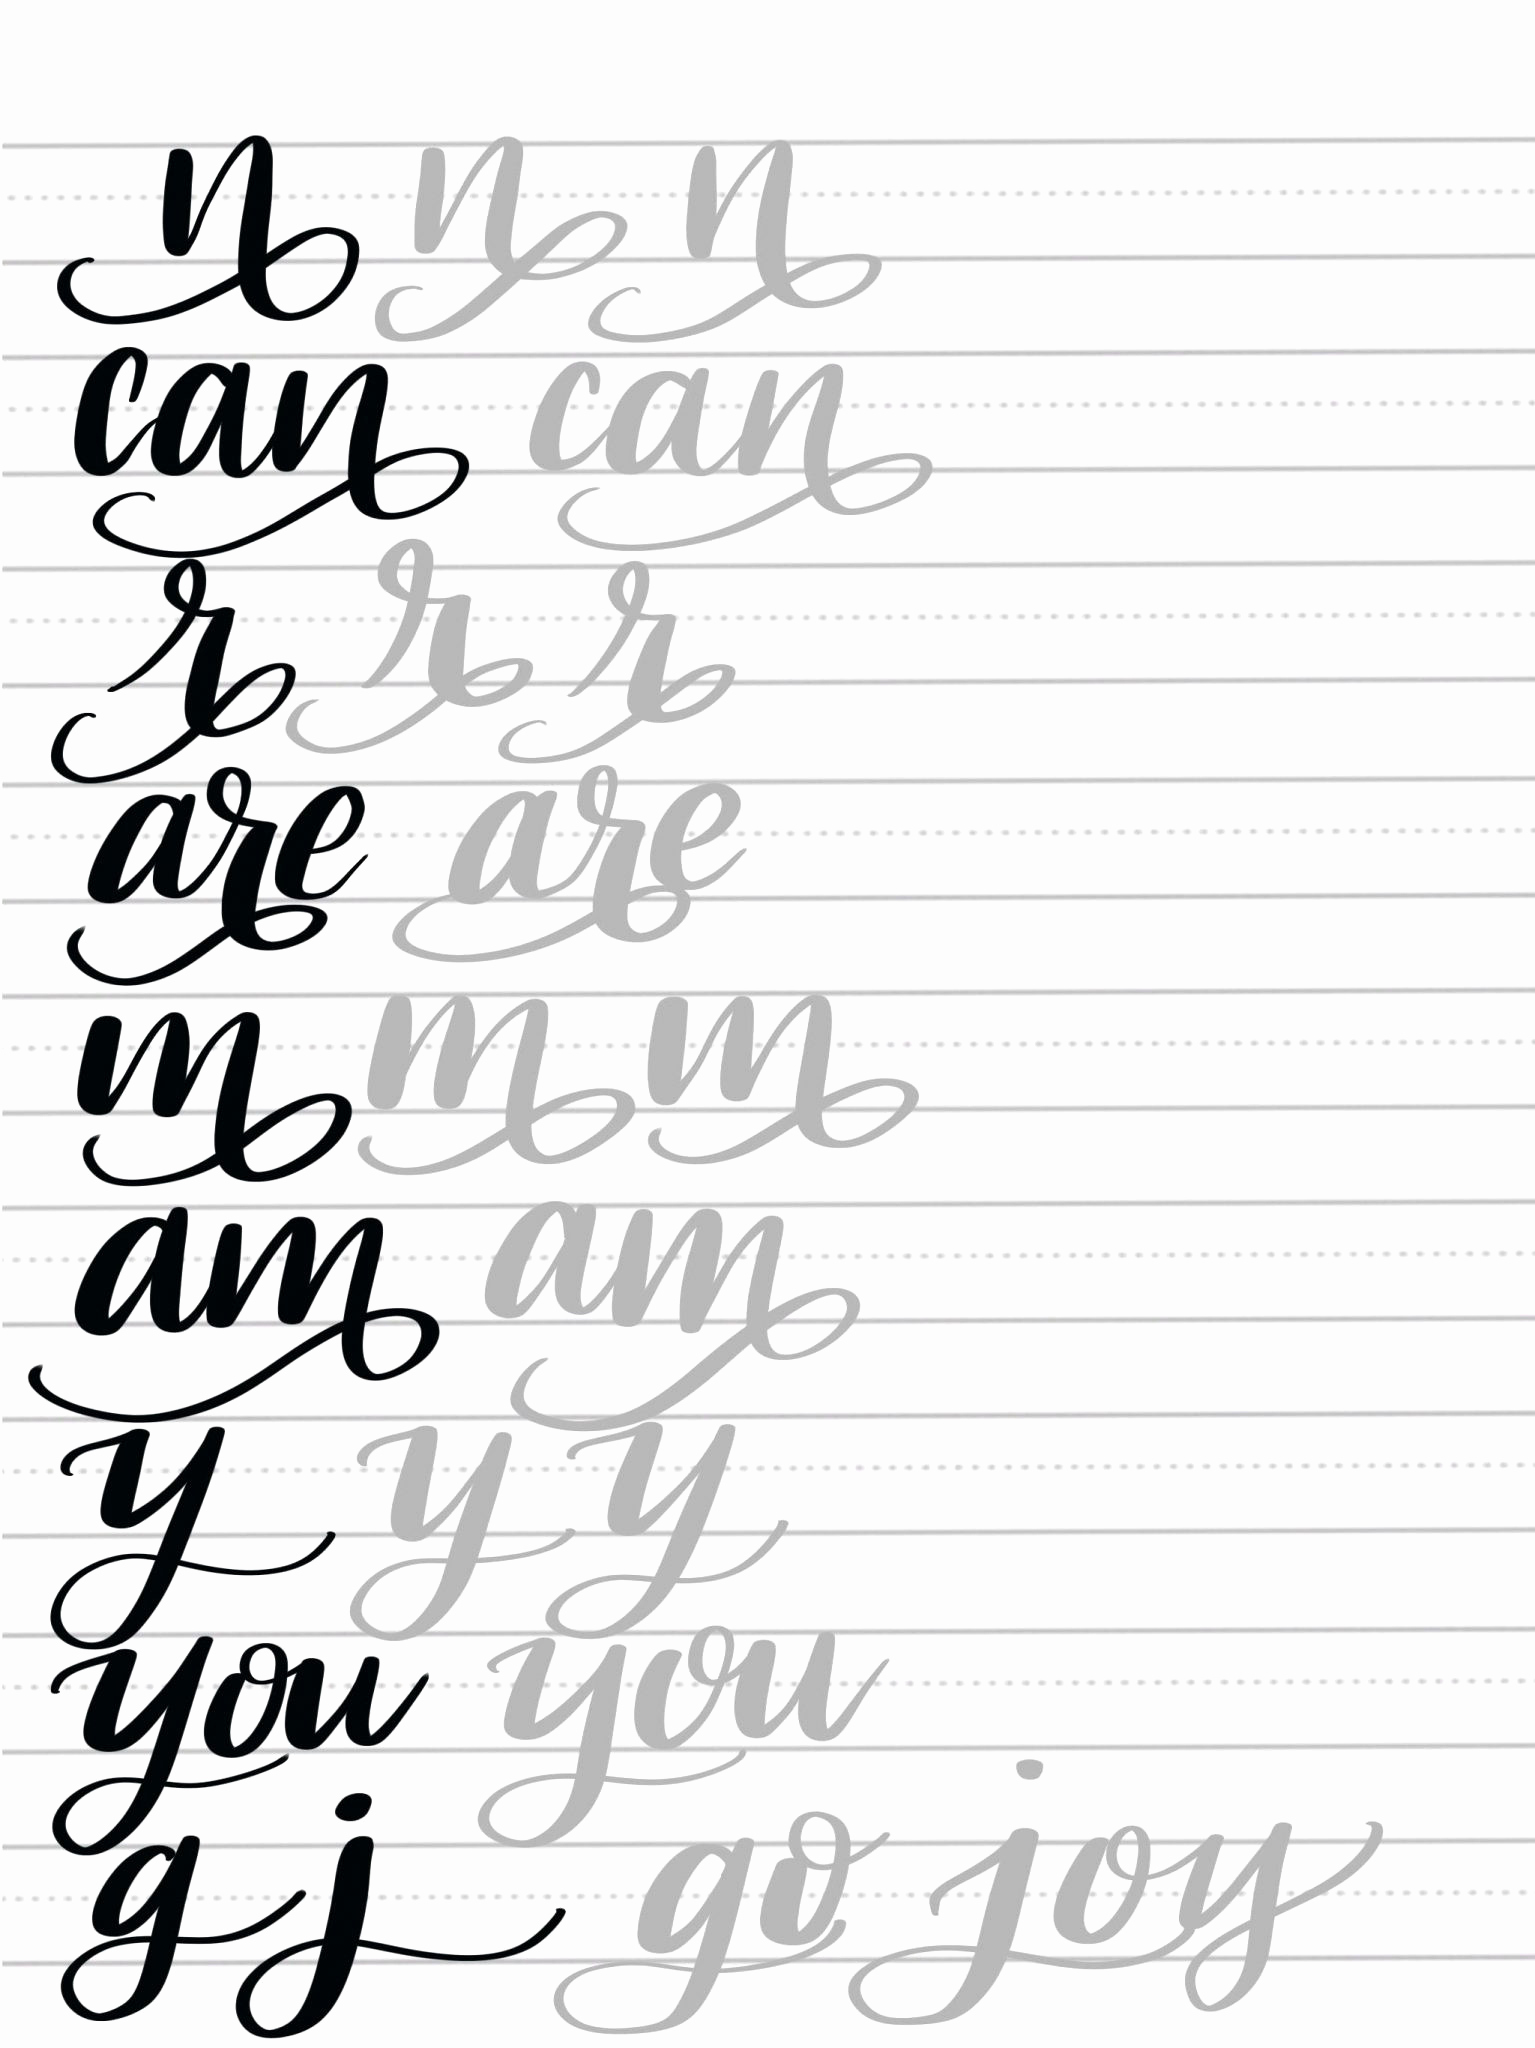 Free Calligraphy Worksheets Printable Beautiful Free Calligraphy Worksheets to Educations Free